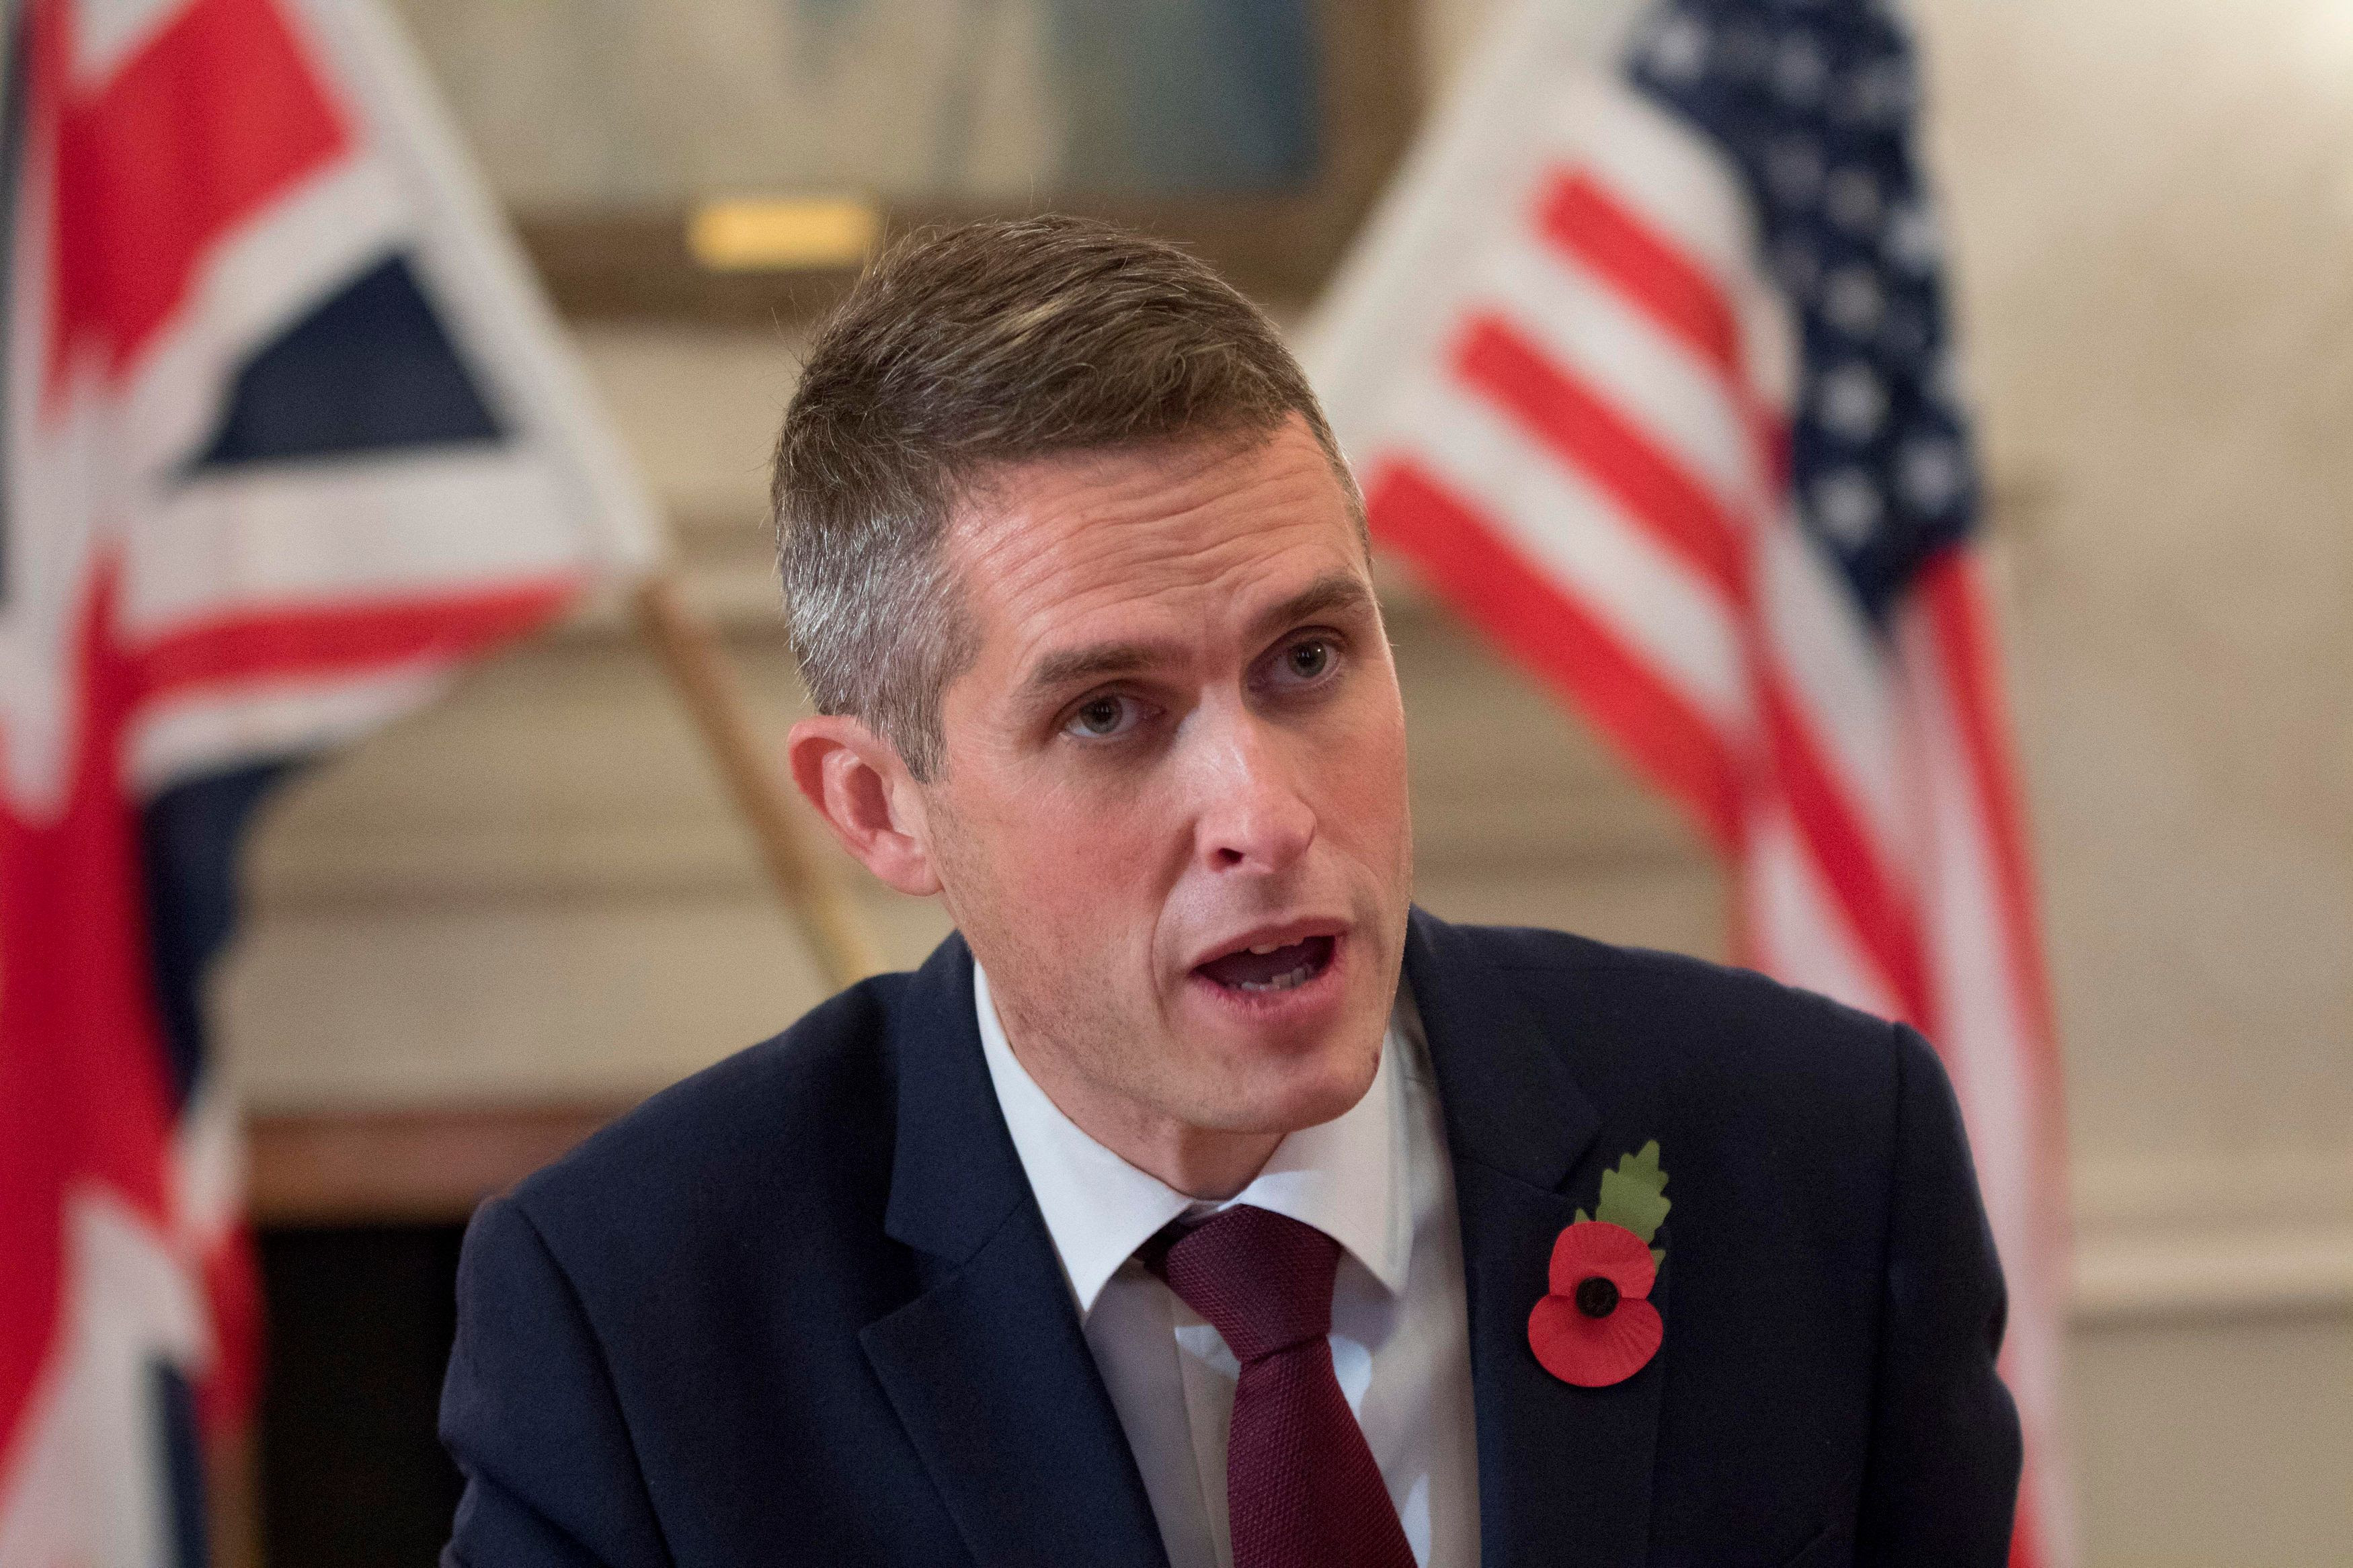 <strong>New Defence Secretary Gavin Williamson has declared his view that British jihadis fighting for so-called Islamic State should be killed</strong>